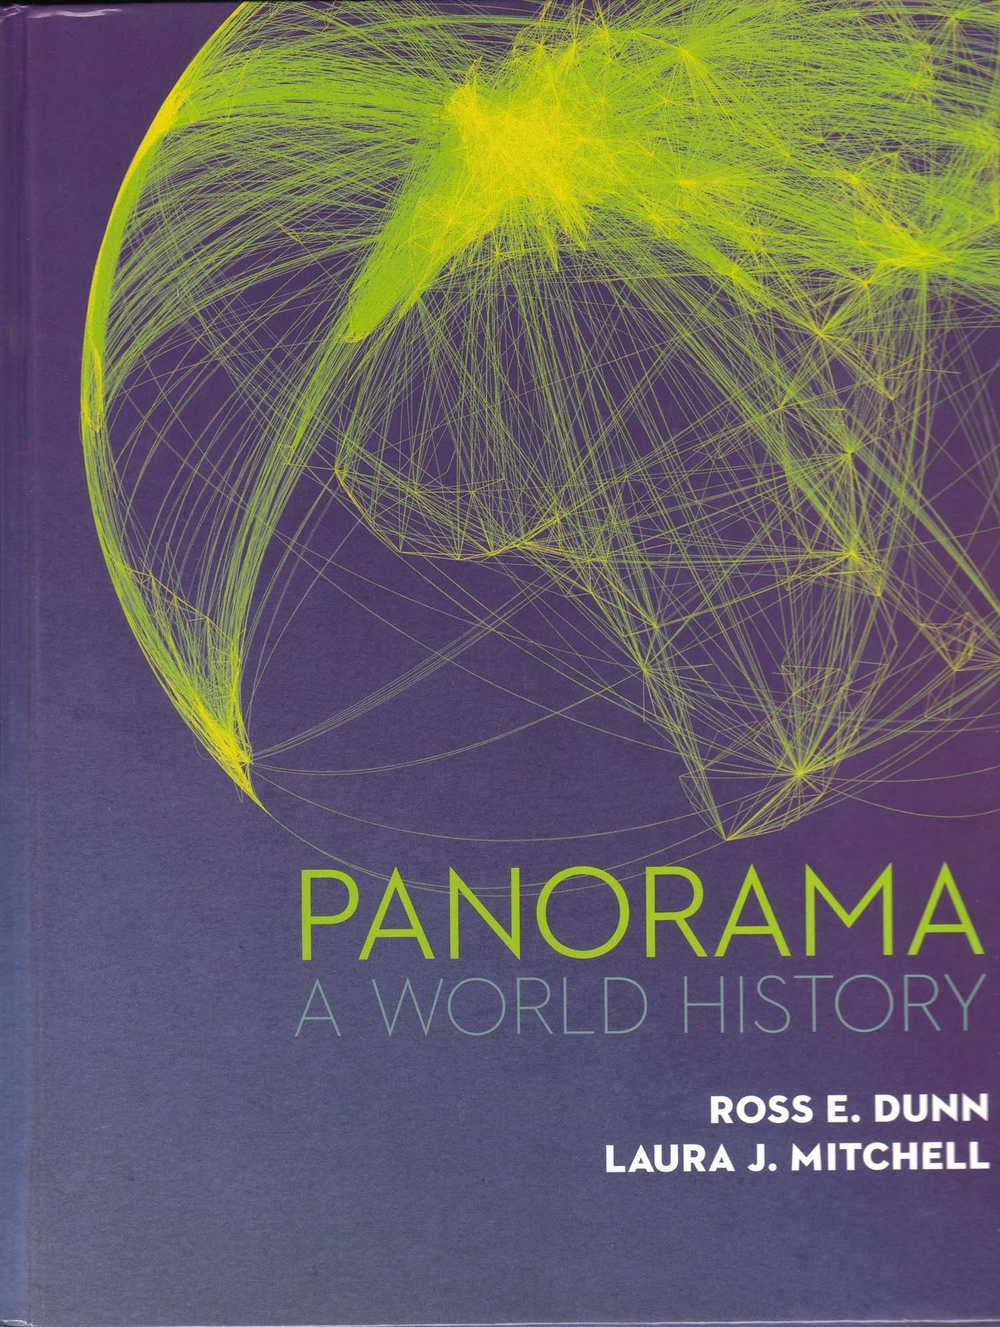 Ross E. Dunn and Laura J. Mitchell,  Panorama: A World History  (New York: McGraw-Hill Education, 2015).